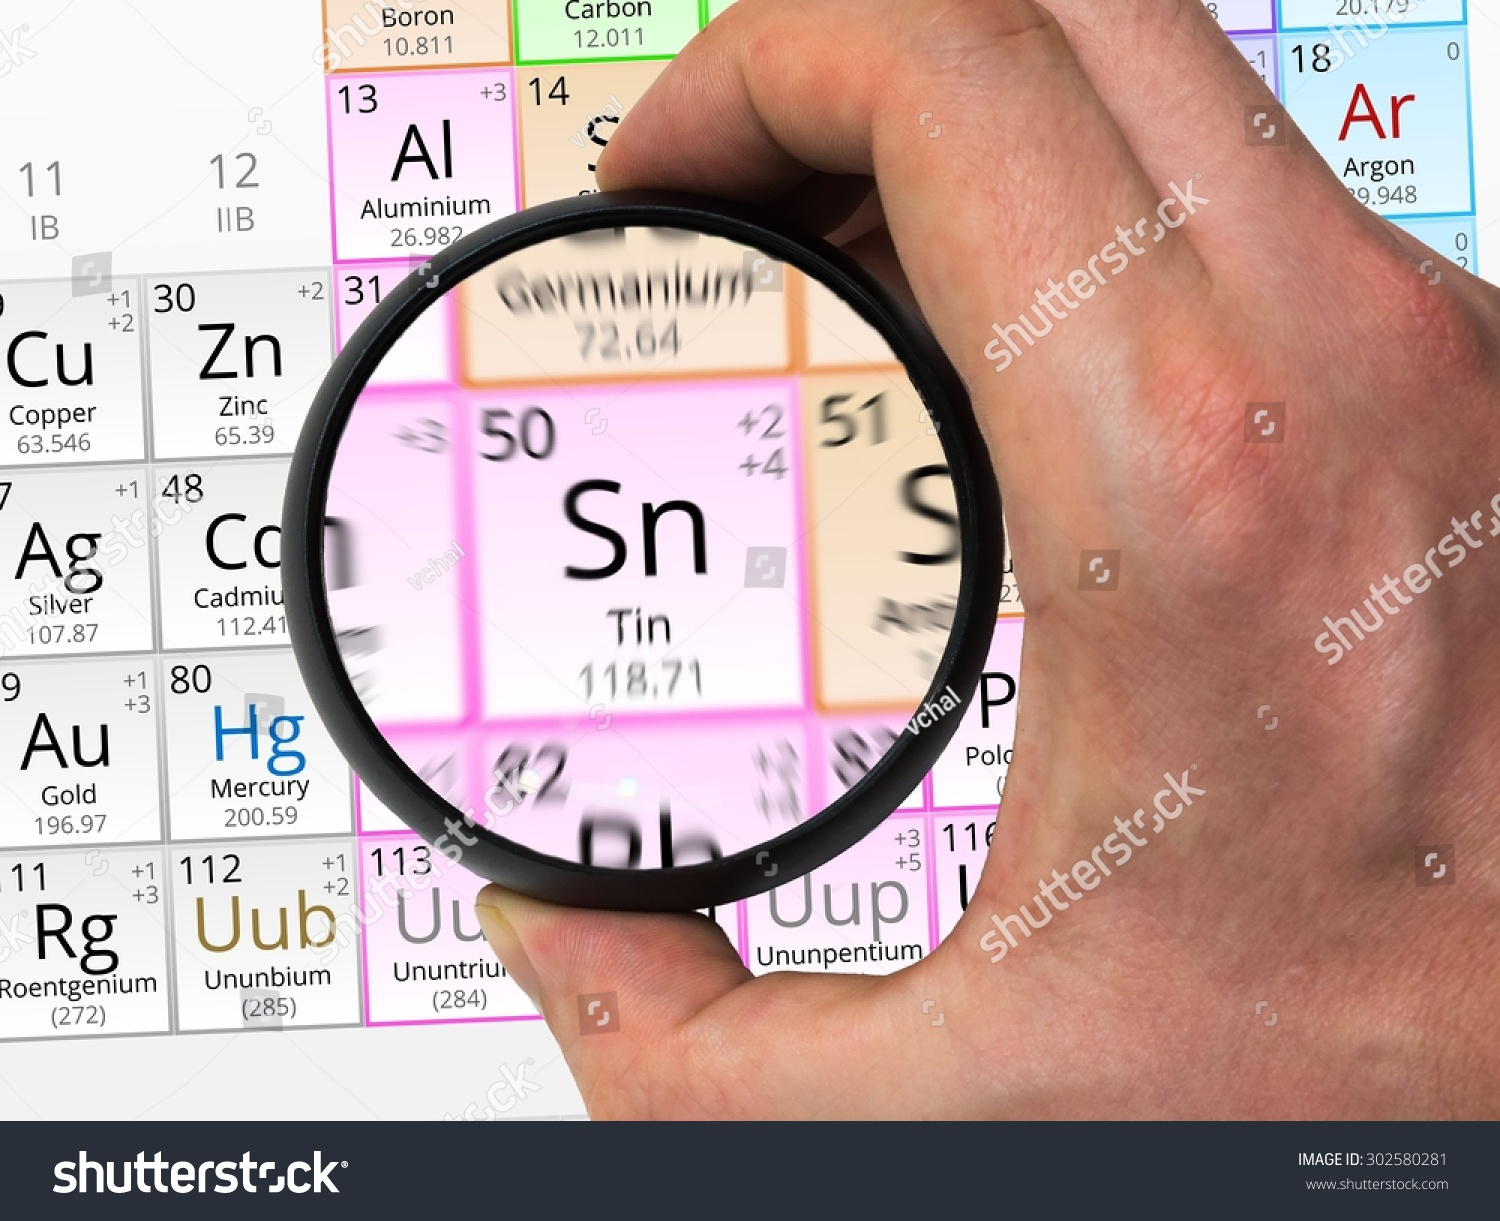 Tin symbol sn element periodic table stock photo 302580281 tin symbol sn element of the periodic table zoomed with magnifying glass biocorpaavc Image collections